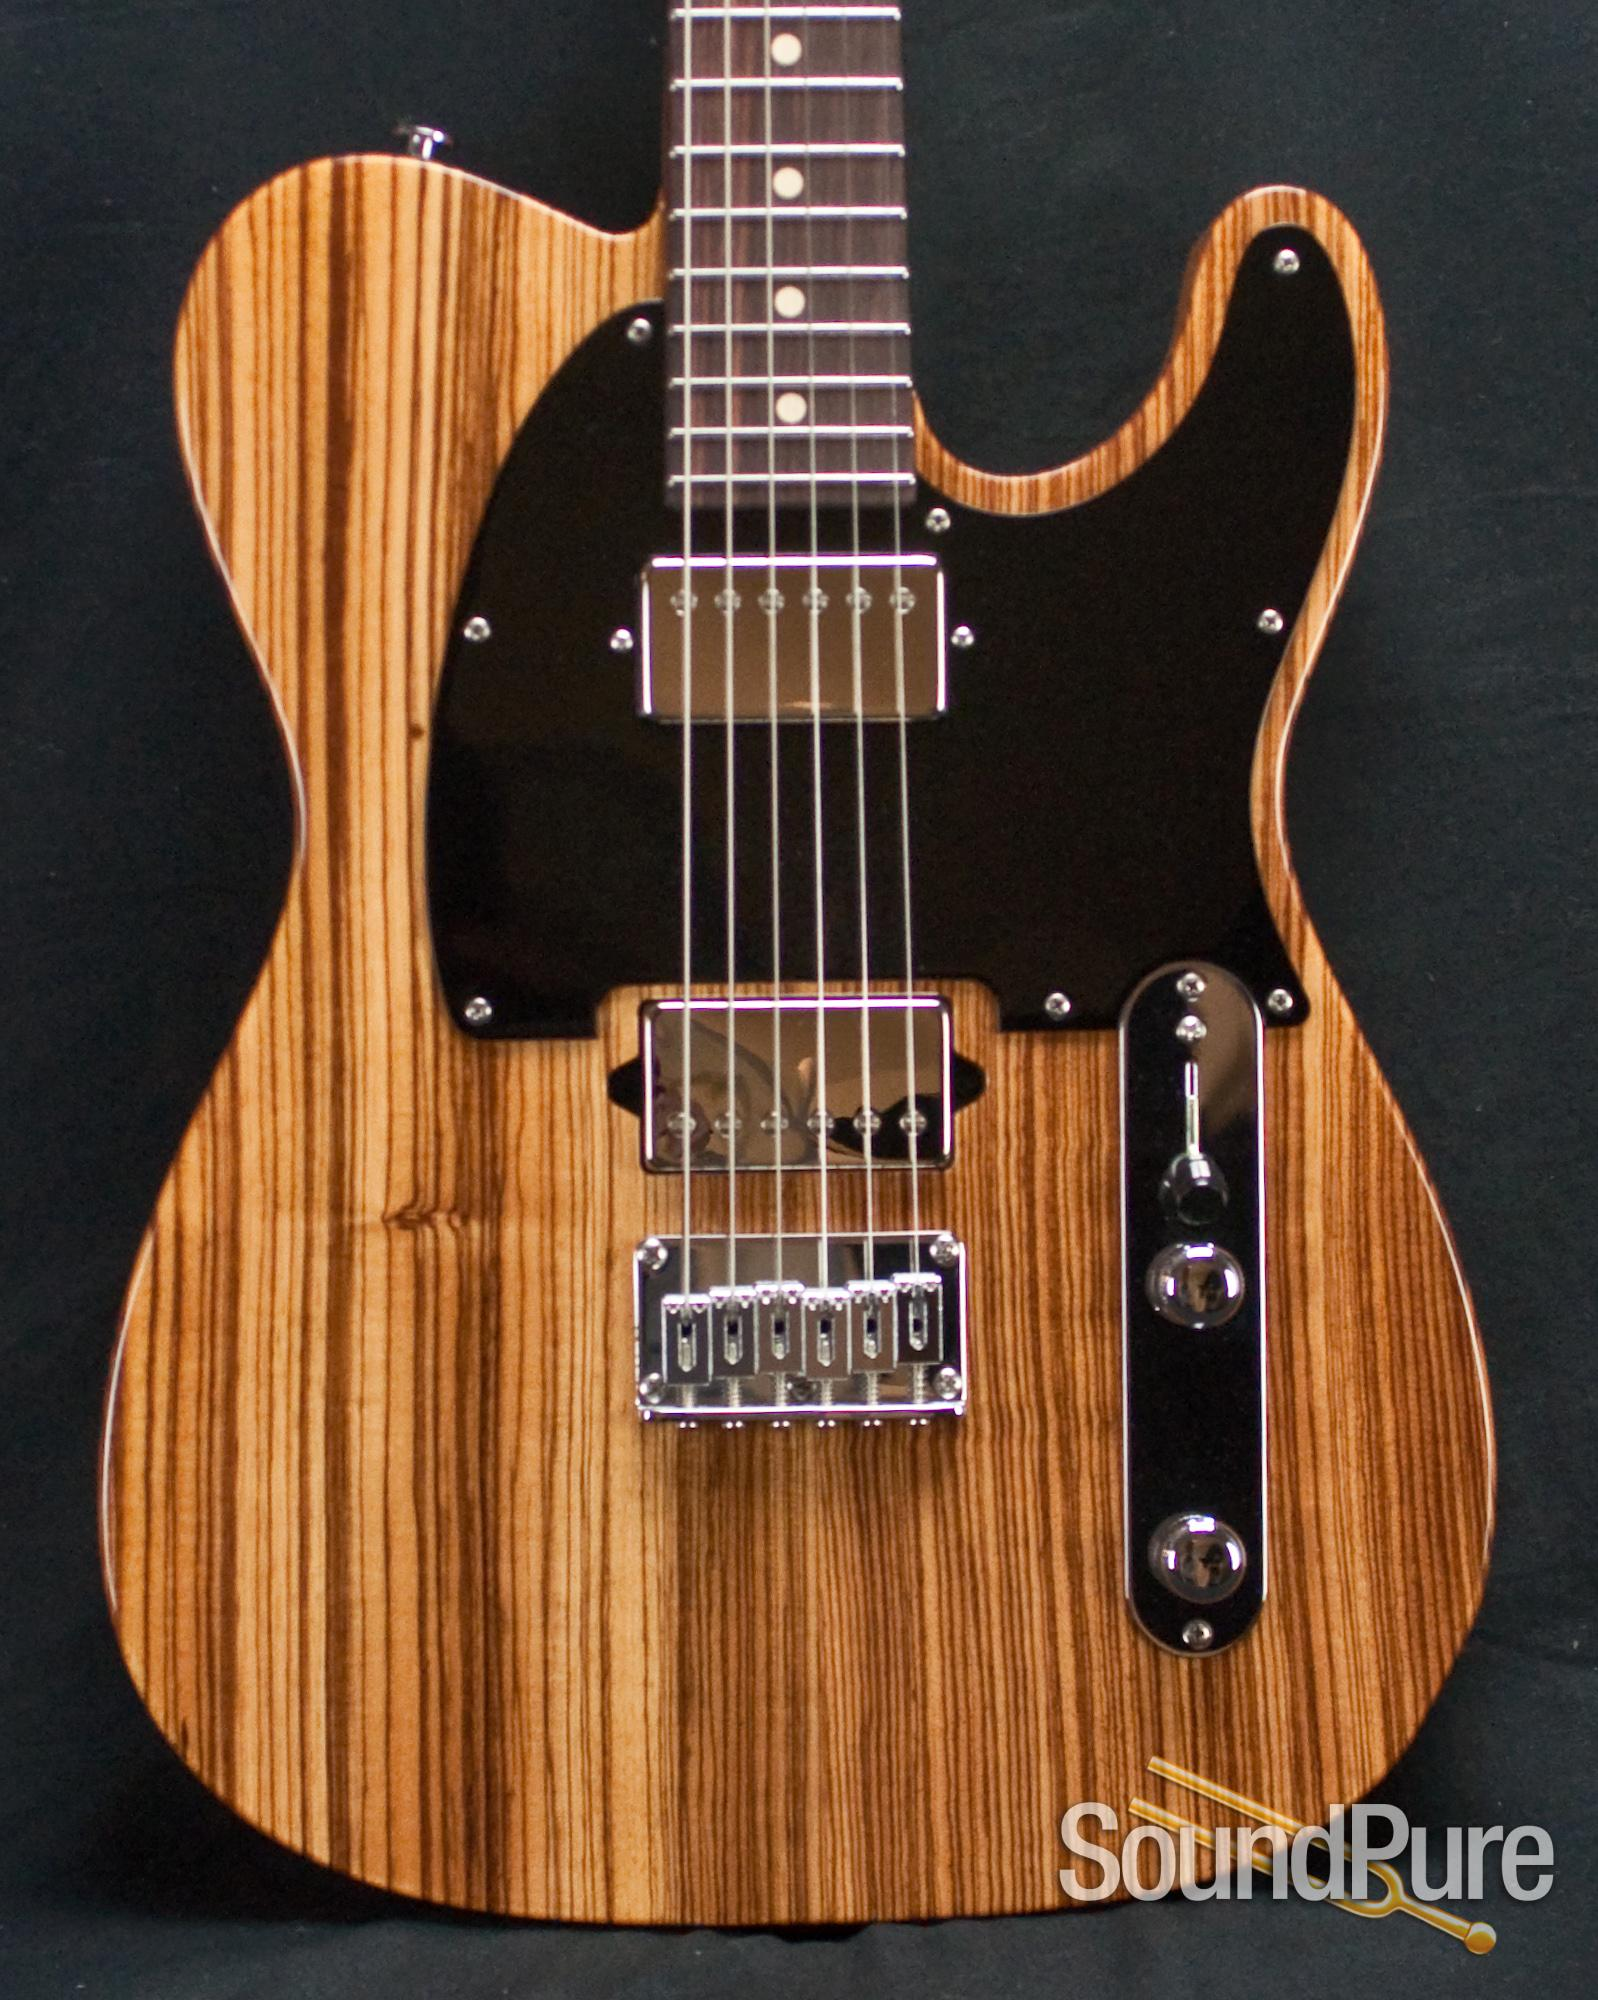 Suhr Classic T Zebrawood Reverse Headstock Guitar 25462